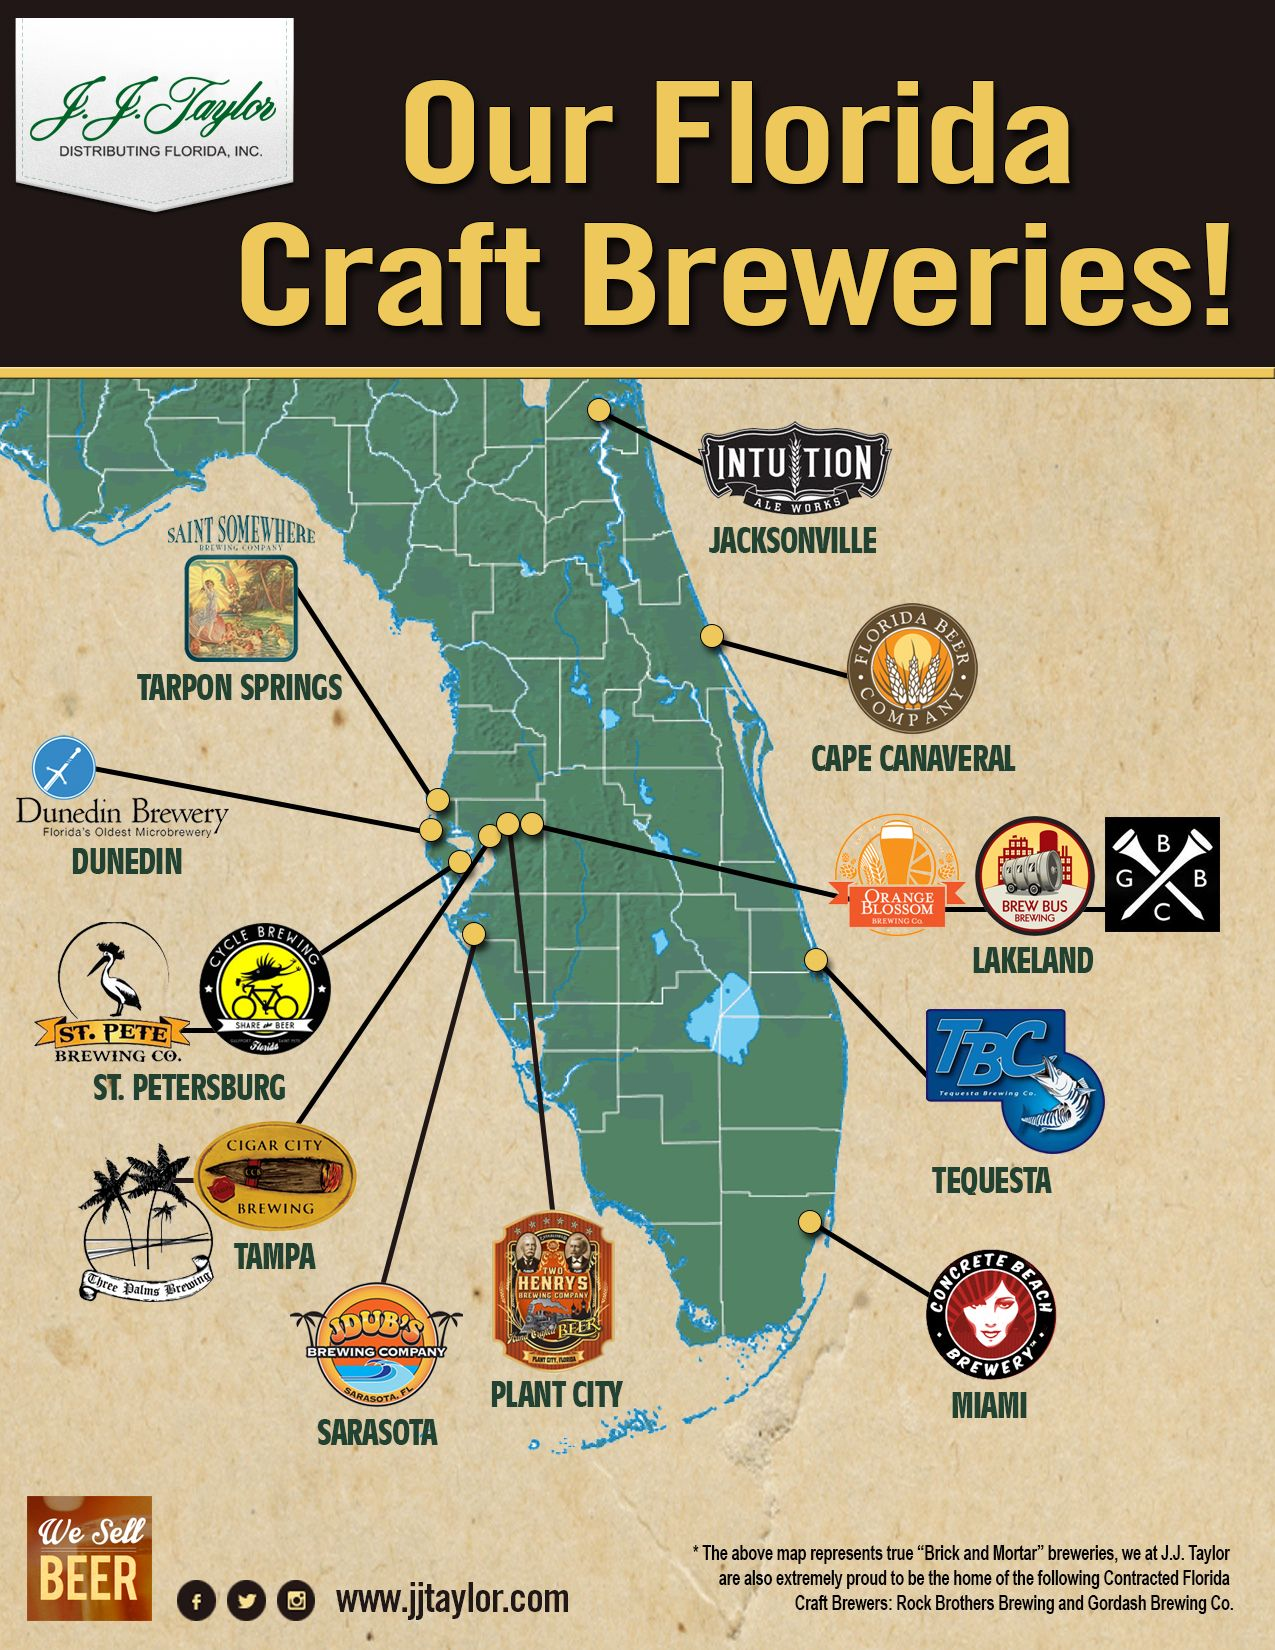 Florida Craft Breweries Map J.J. Taylor Florida Blog | Craft brewery, Brewery, Tampa breweries